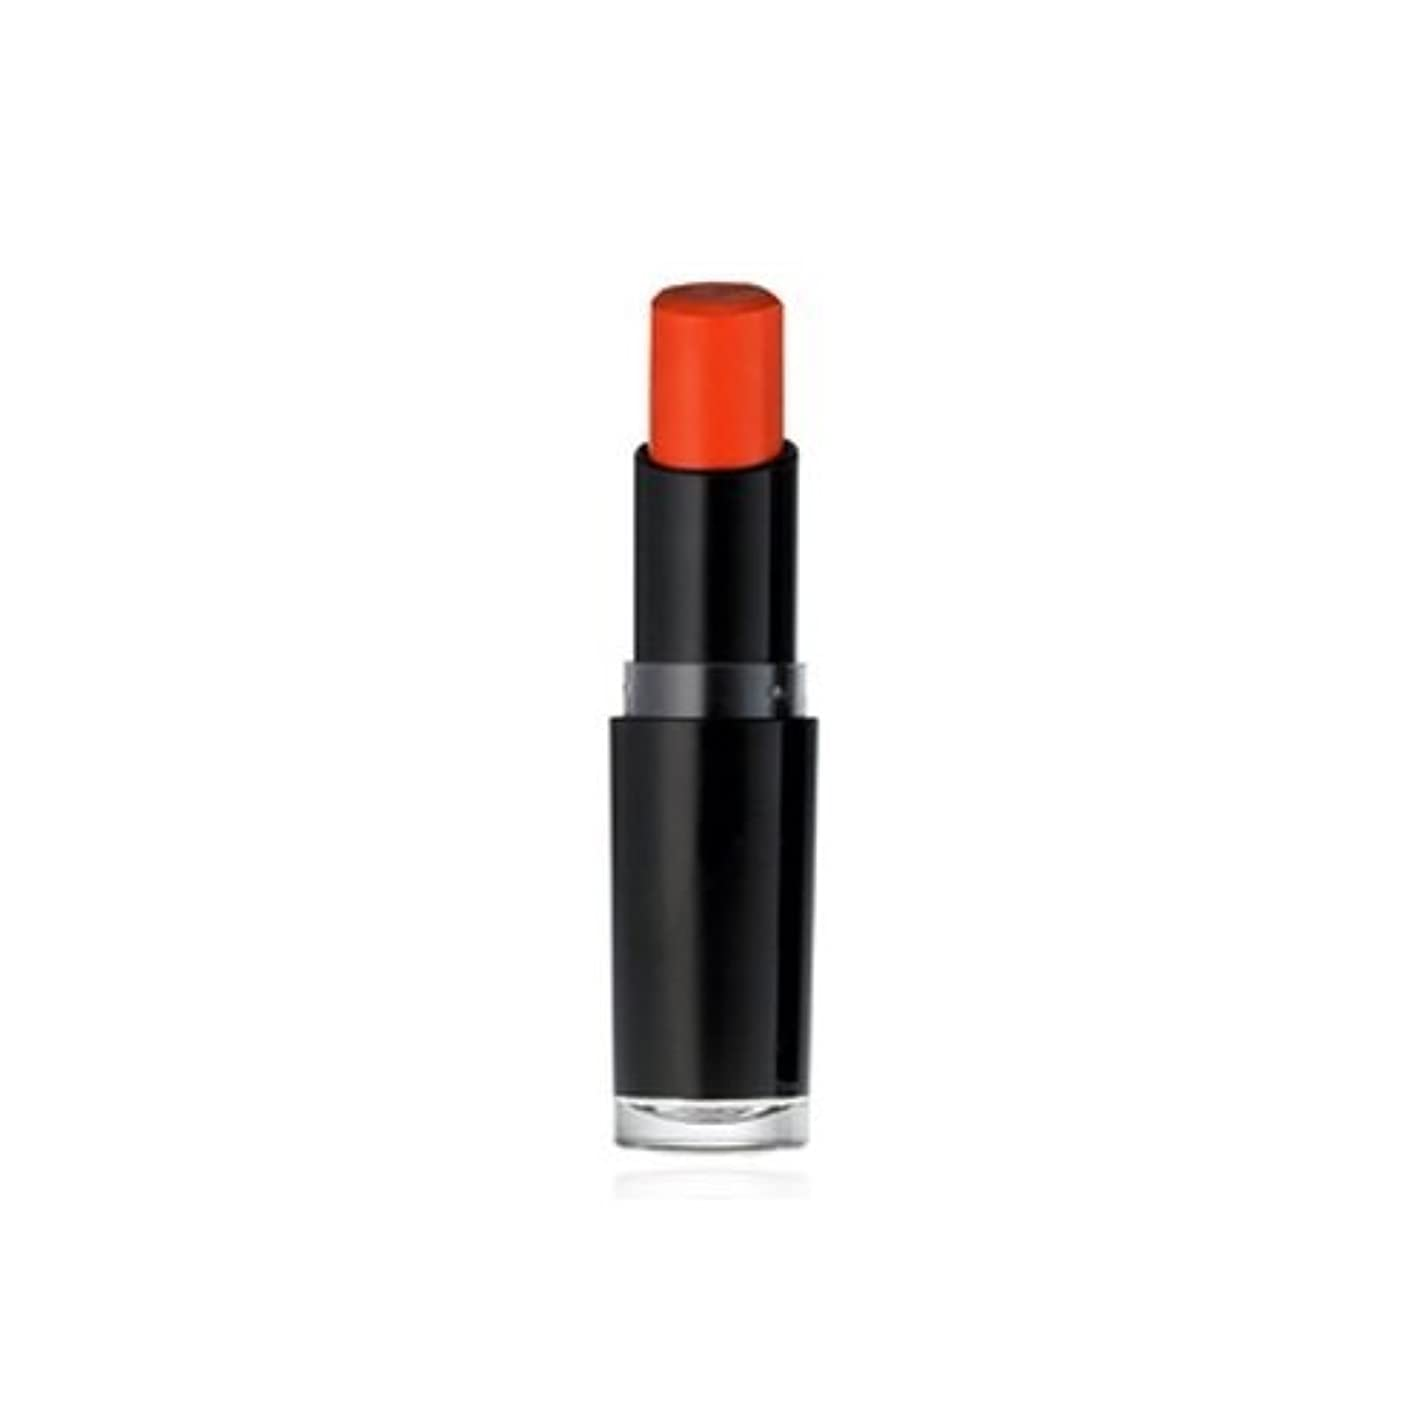 シーケンスマトロン重力(6 Pack) WET N WILD Mega Last Matte Lip Cover - 24 Carrot Gold (並行輸入品)